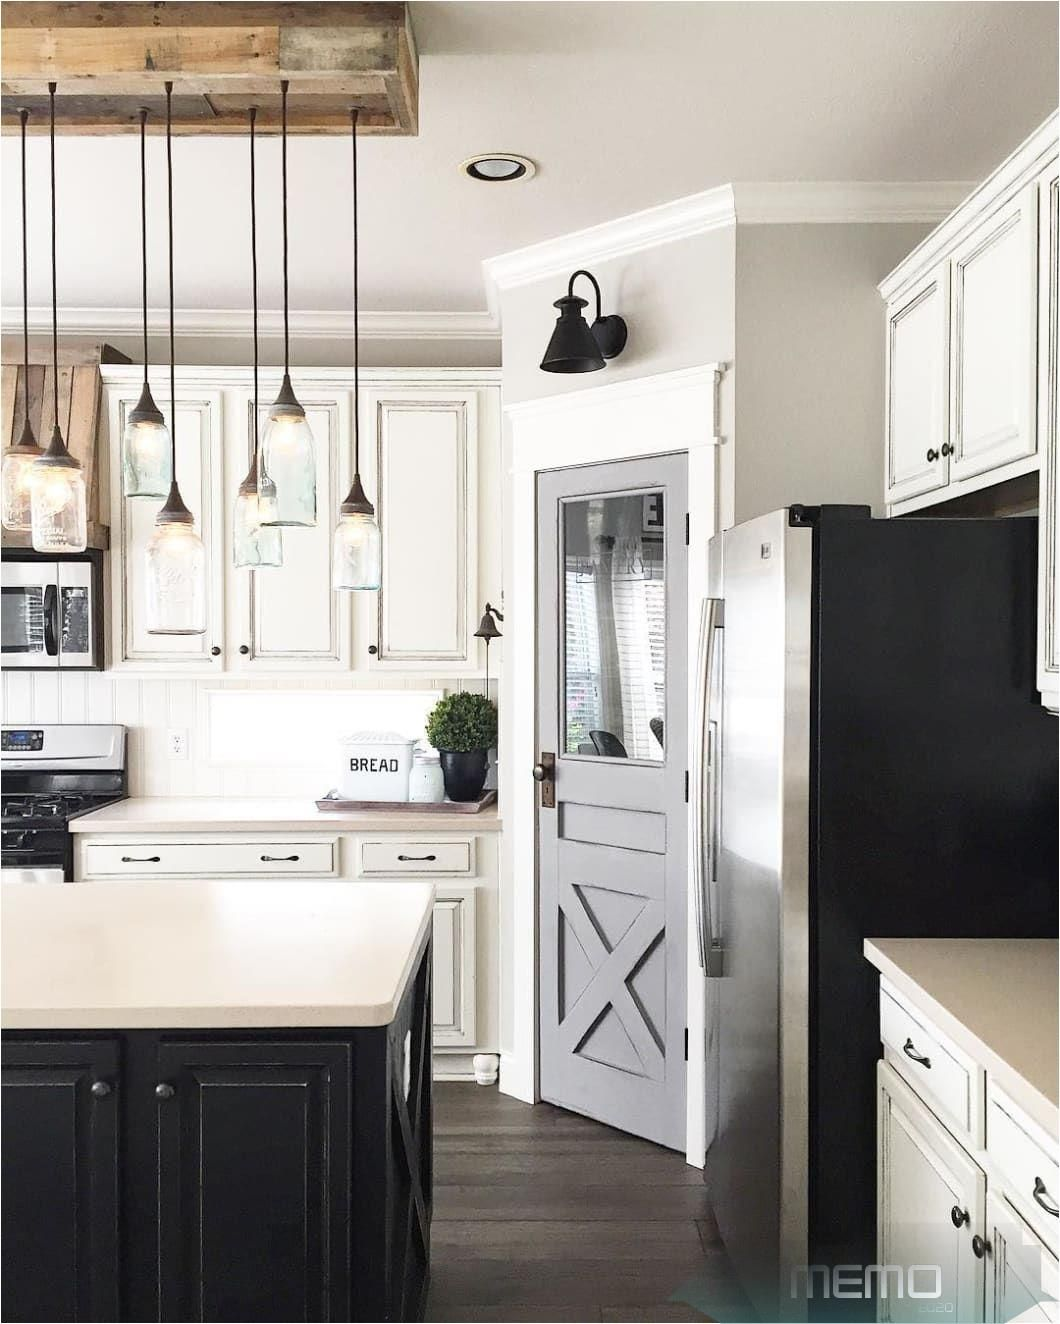 Mar 4 2020 Here S How To Turn An Awkward Annoyance Into A Real Selling Point Tables In 2020 Kitchen Cabinet Design Farmhouse Kitchen Design Corner Kitchen Cabinet